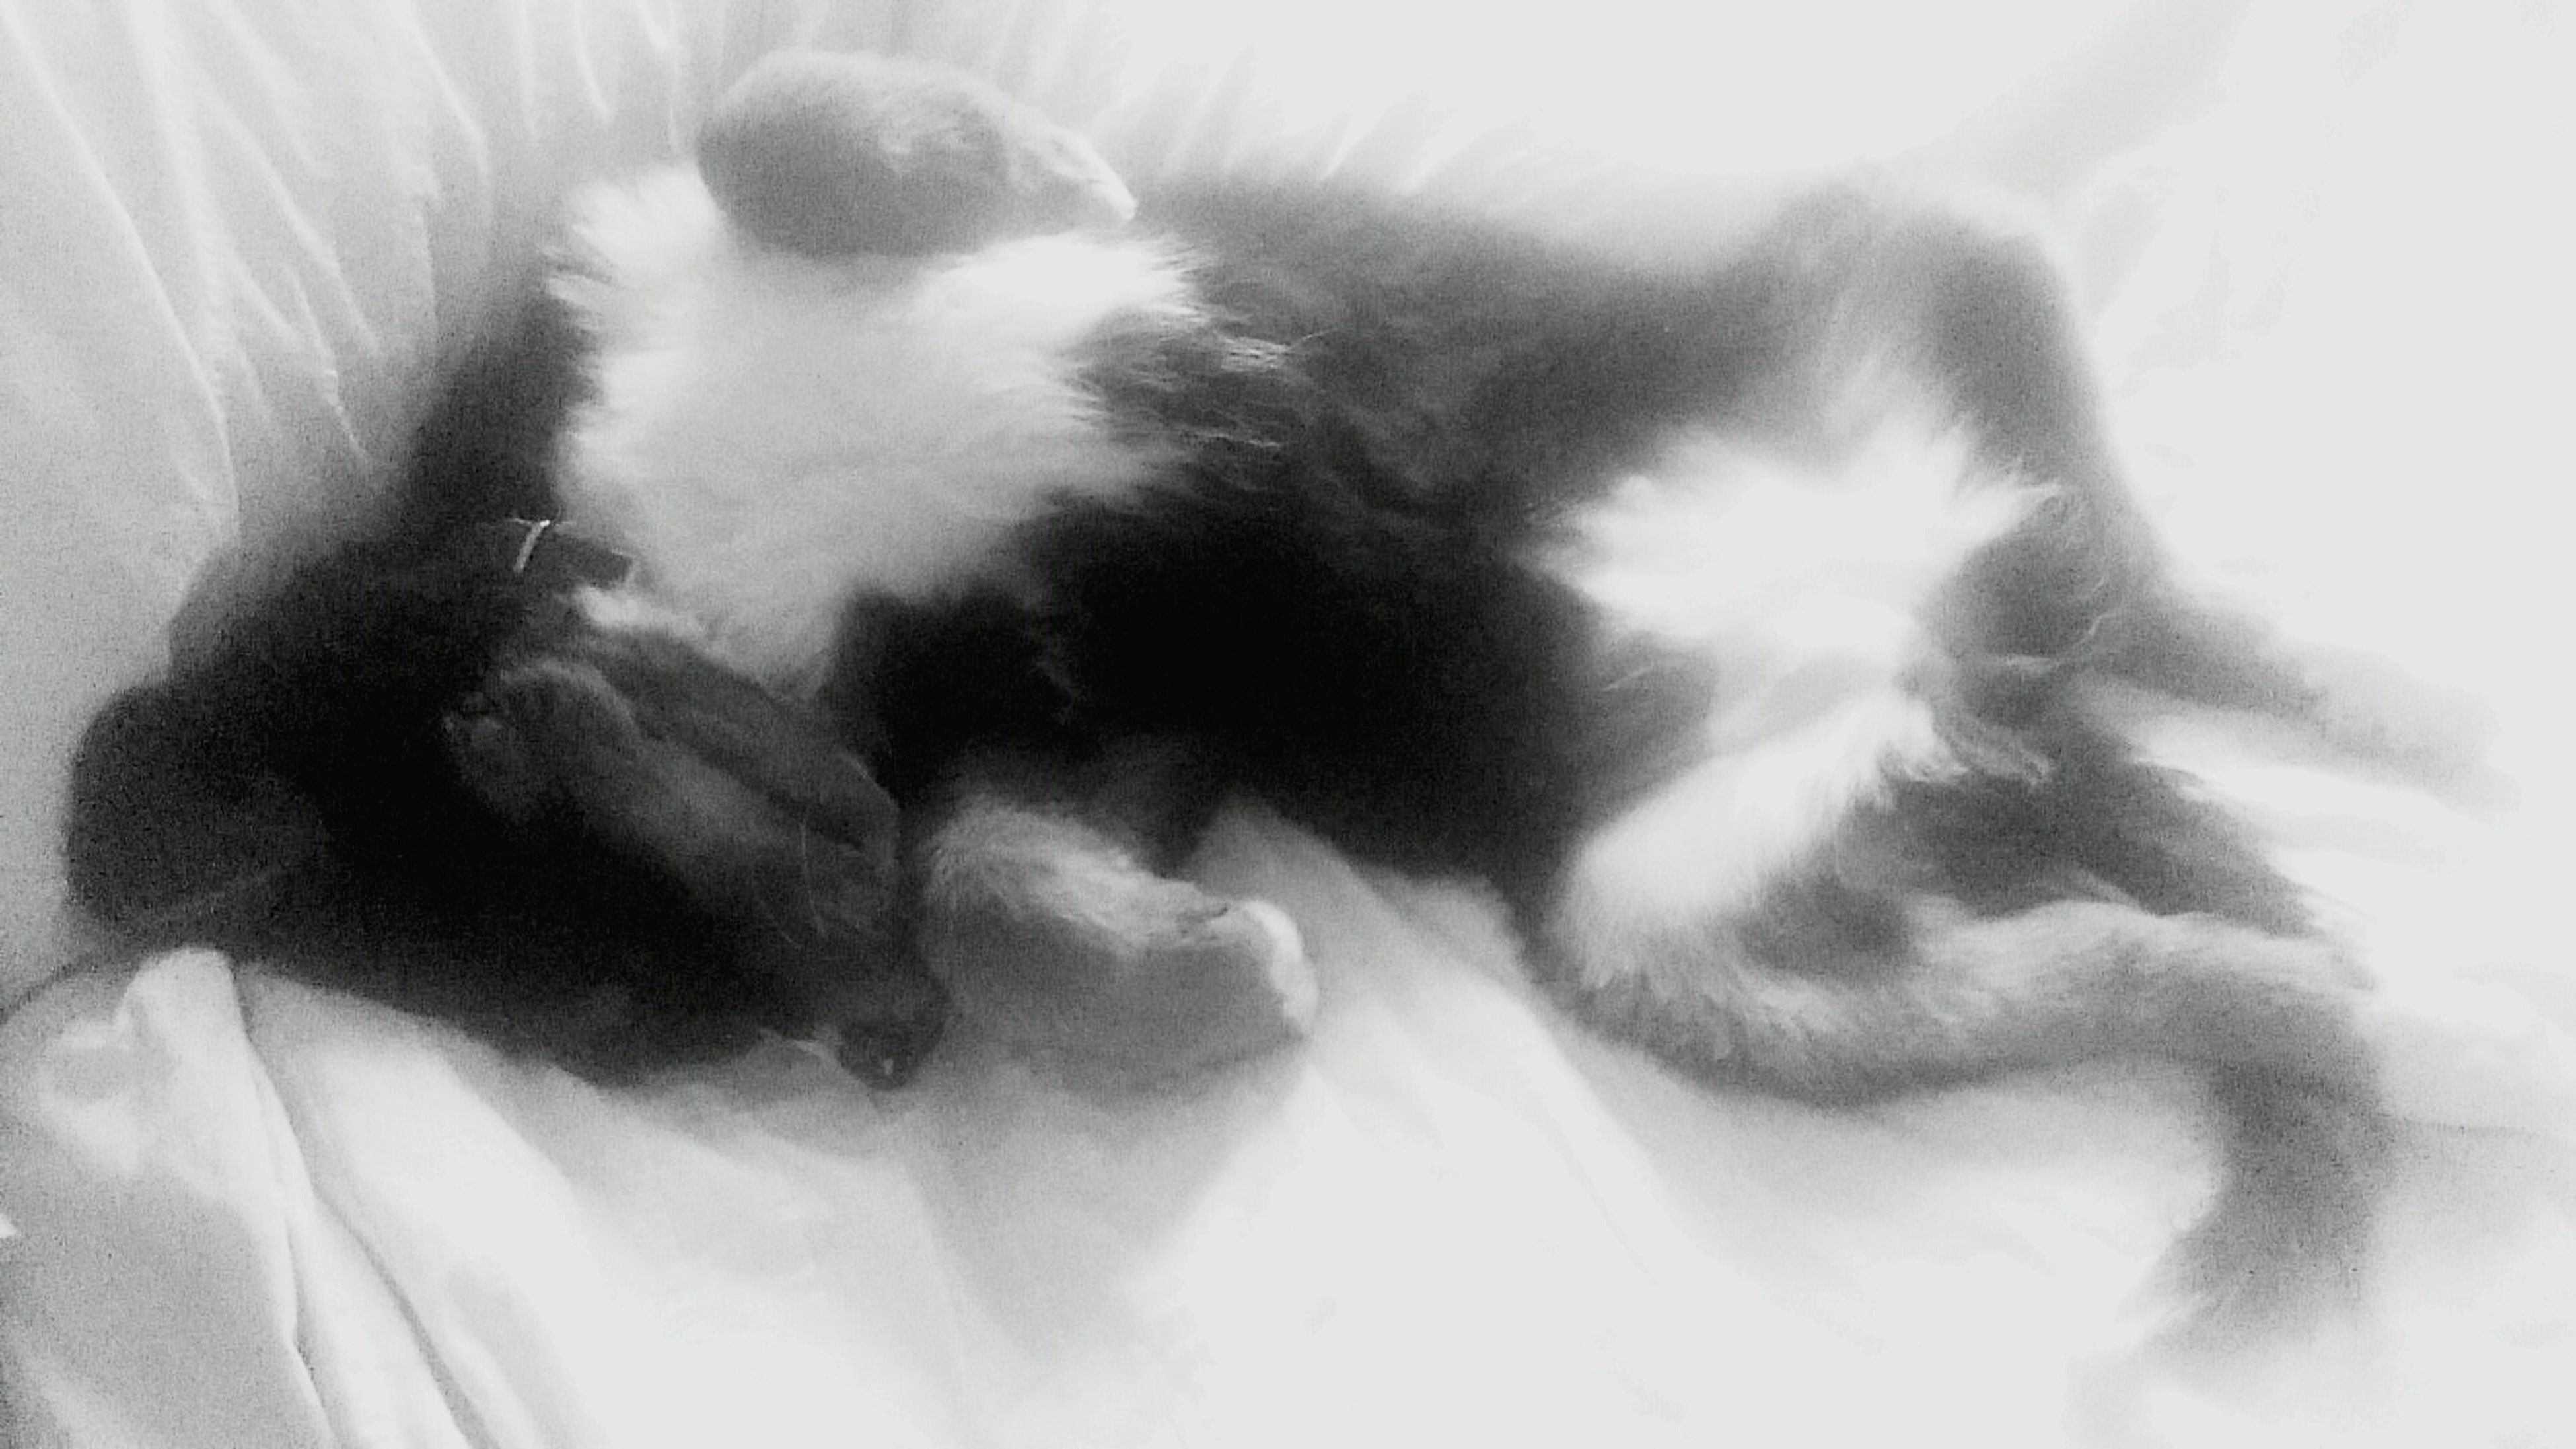 pets, domestic animals, animal themes, domestic cat, indoors, mammal, one animal, cat, feline, relaxation, sleeping, bed, resting, lying down, home interior, whisker, close-up, eyes closed, two animals, home